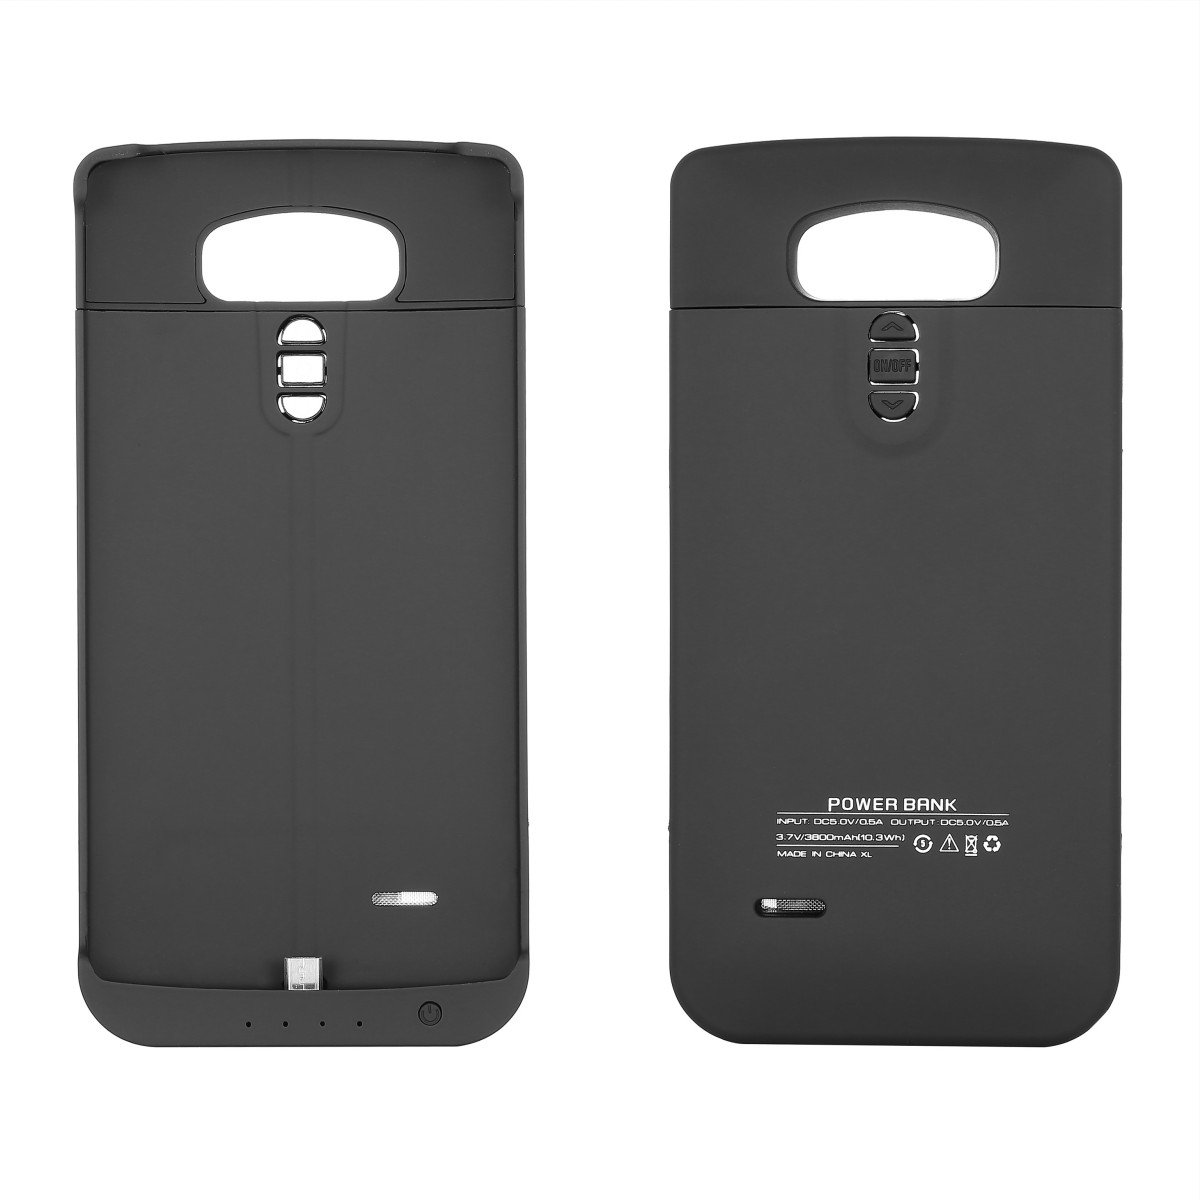 Torubia LG G4 Battery Case, Pouch External Protective Battery Cover LG G4 Juice Pack Case [Pouch ] - Black